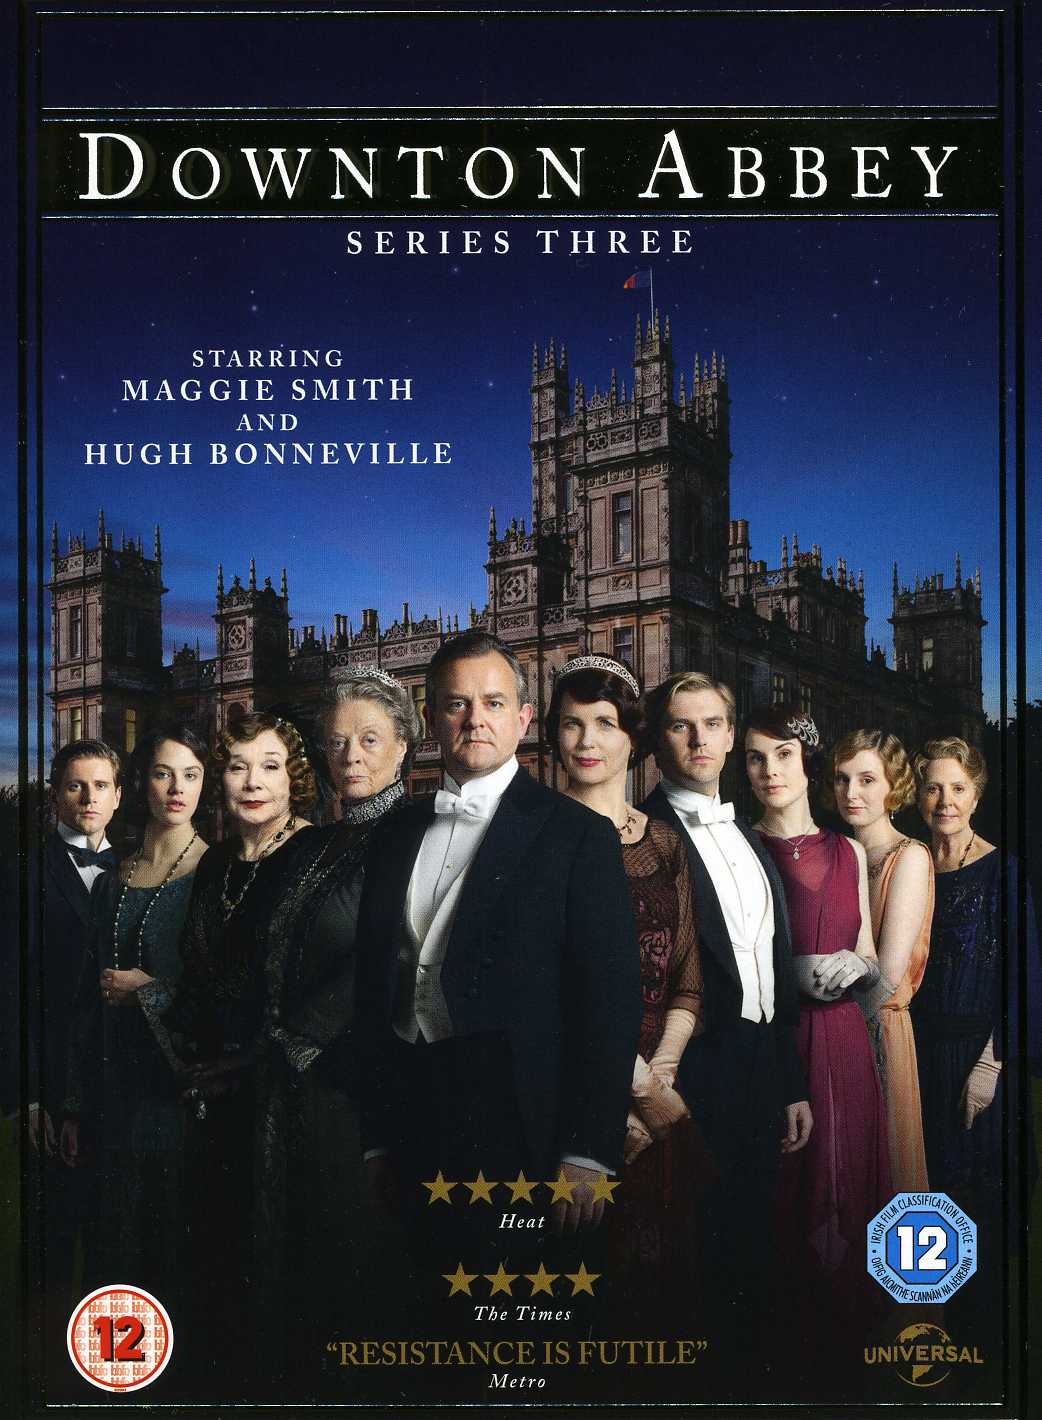 Downton Abbey S3 DVD - Warner Video - Film - UNIVERSAL PICTURES - 5050582916423 - 5. november 2012